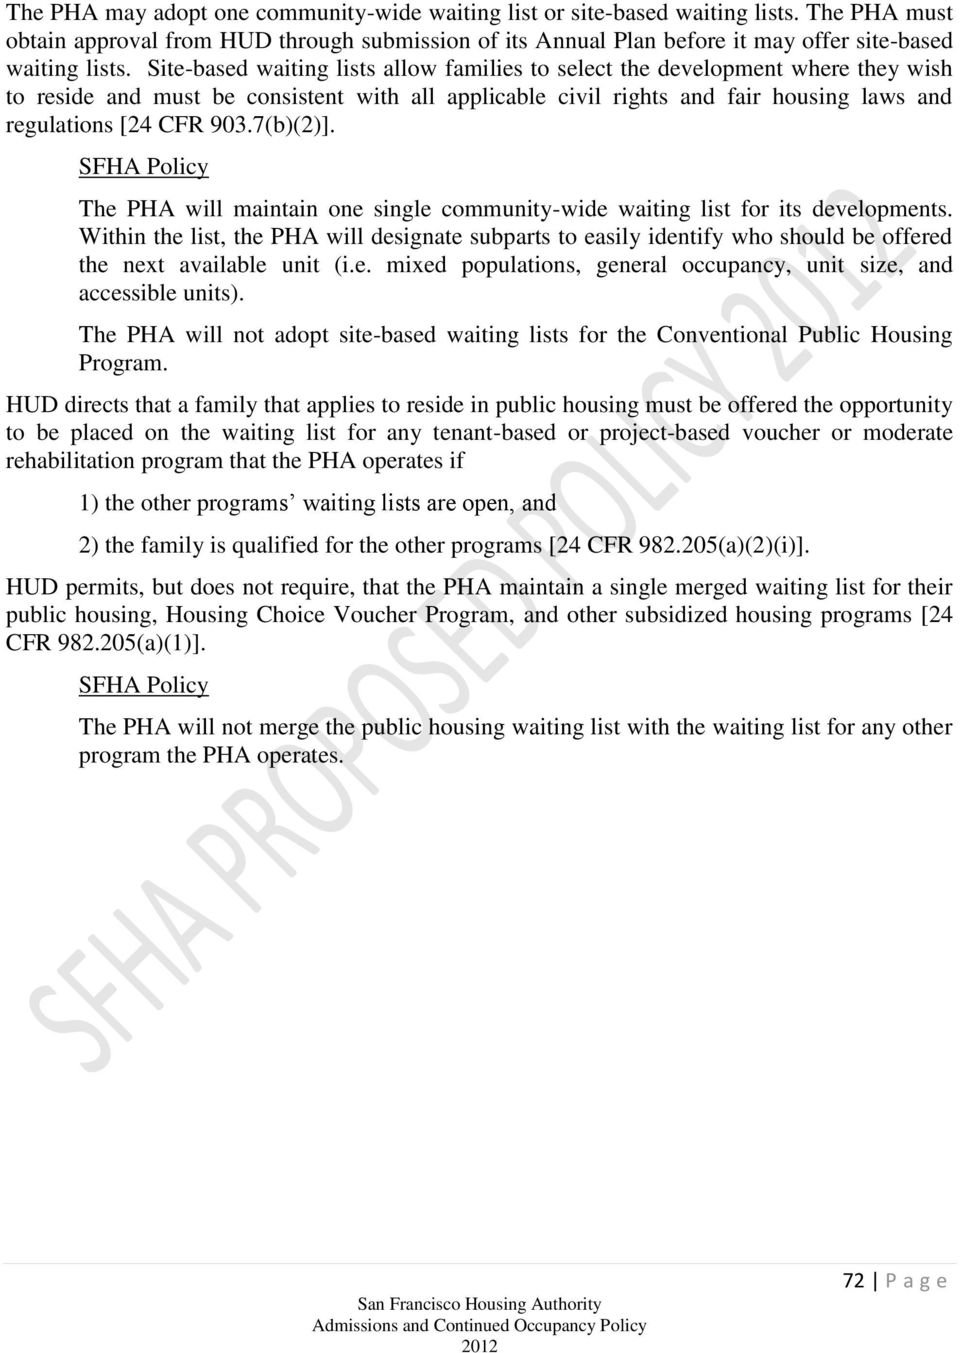 Chapter 4 APPLICATIONS, WAITING LIST AND TENANT SELECTION - PDF